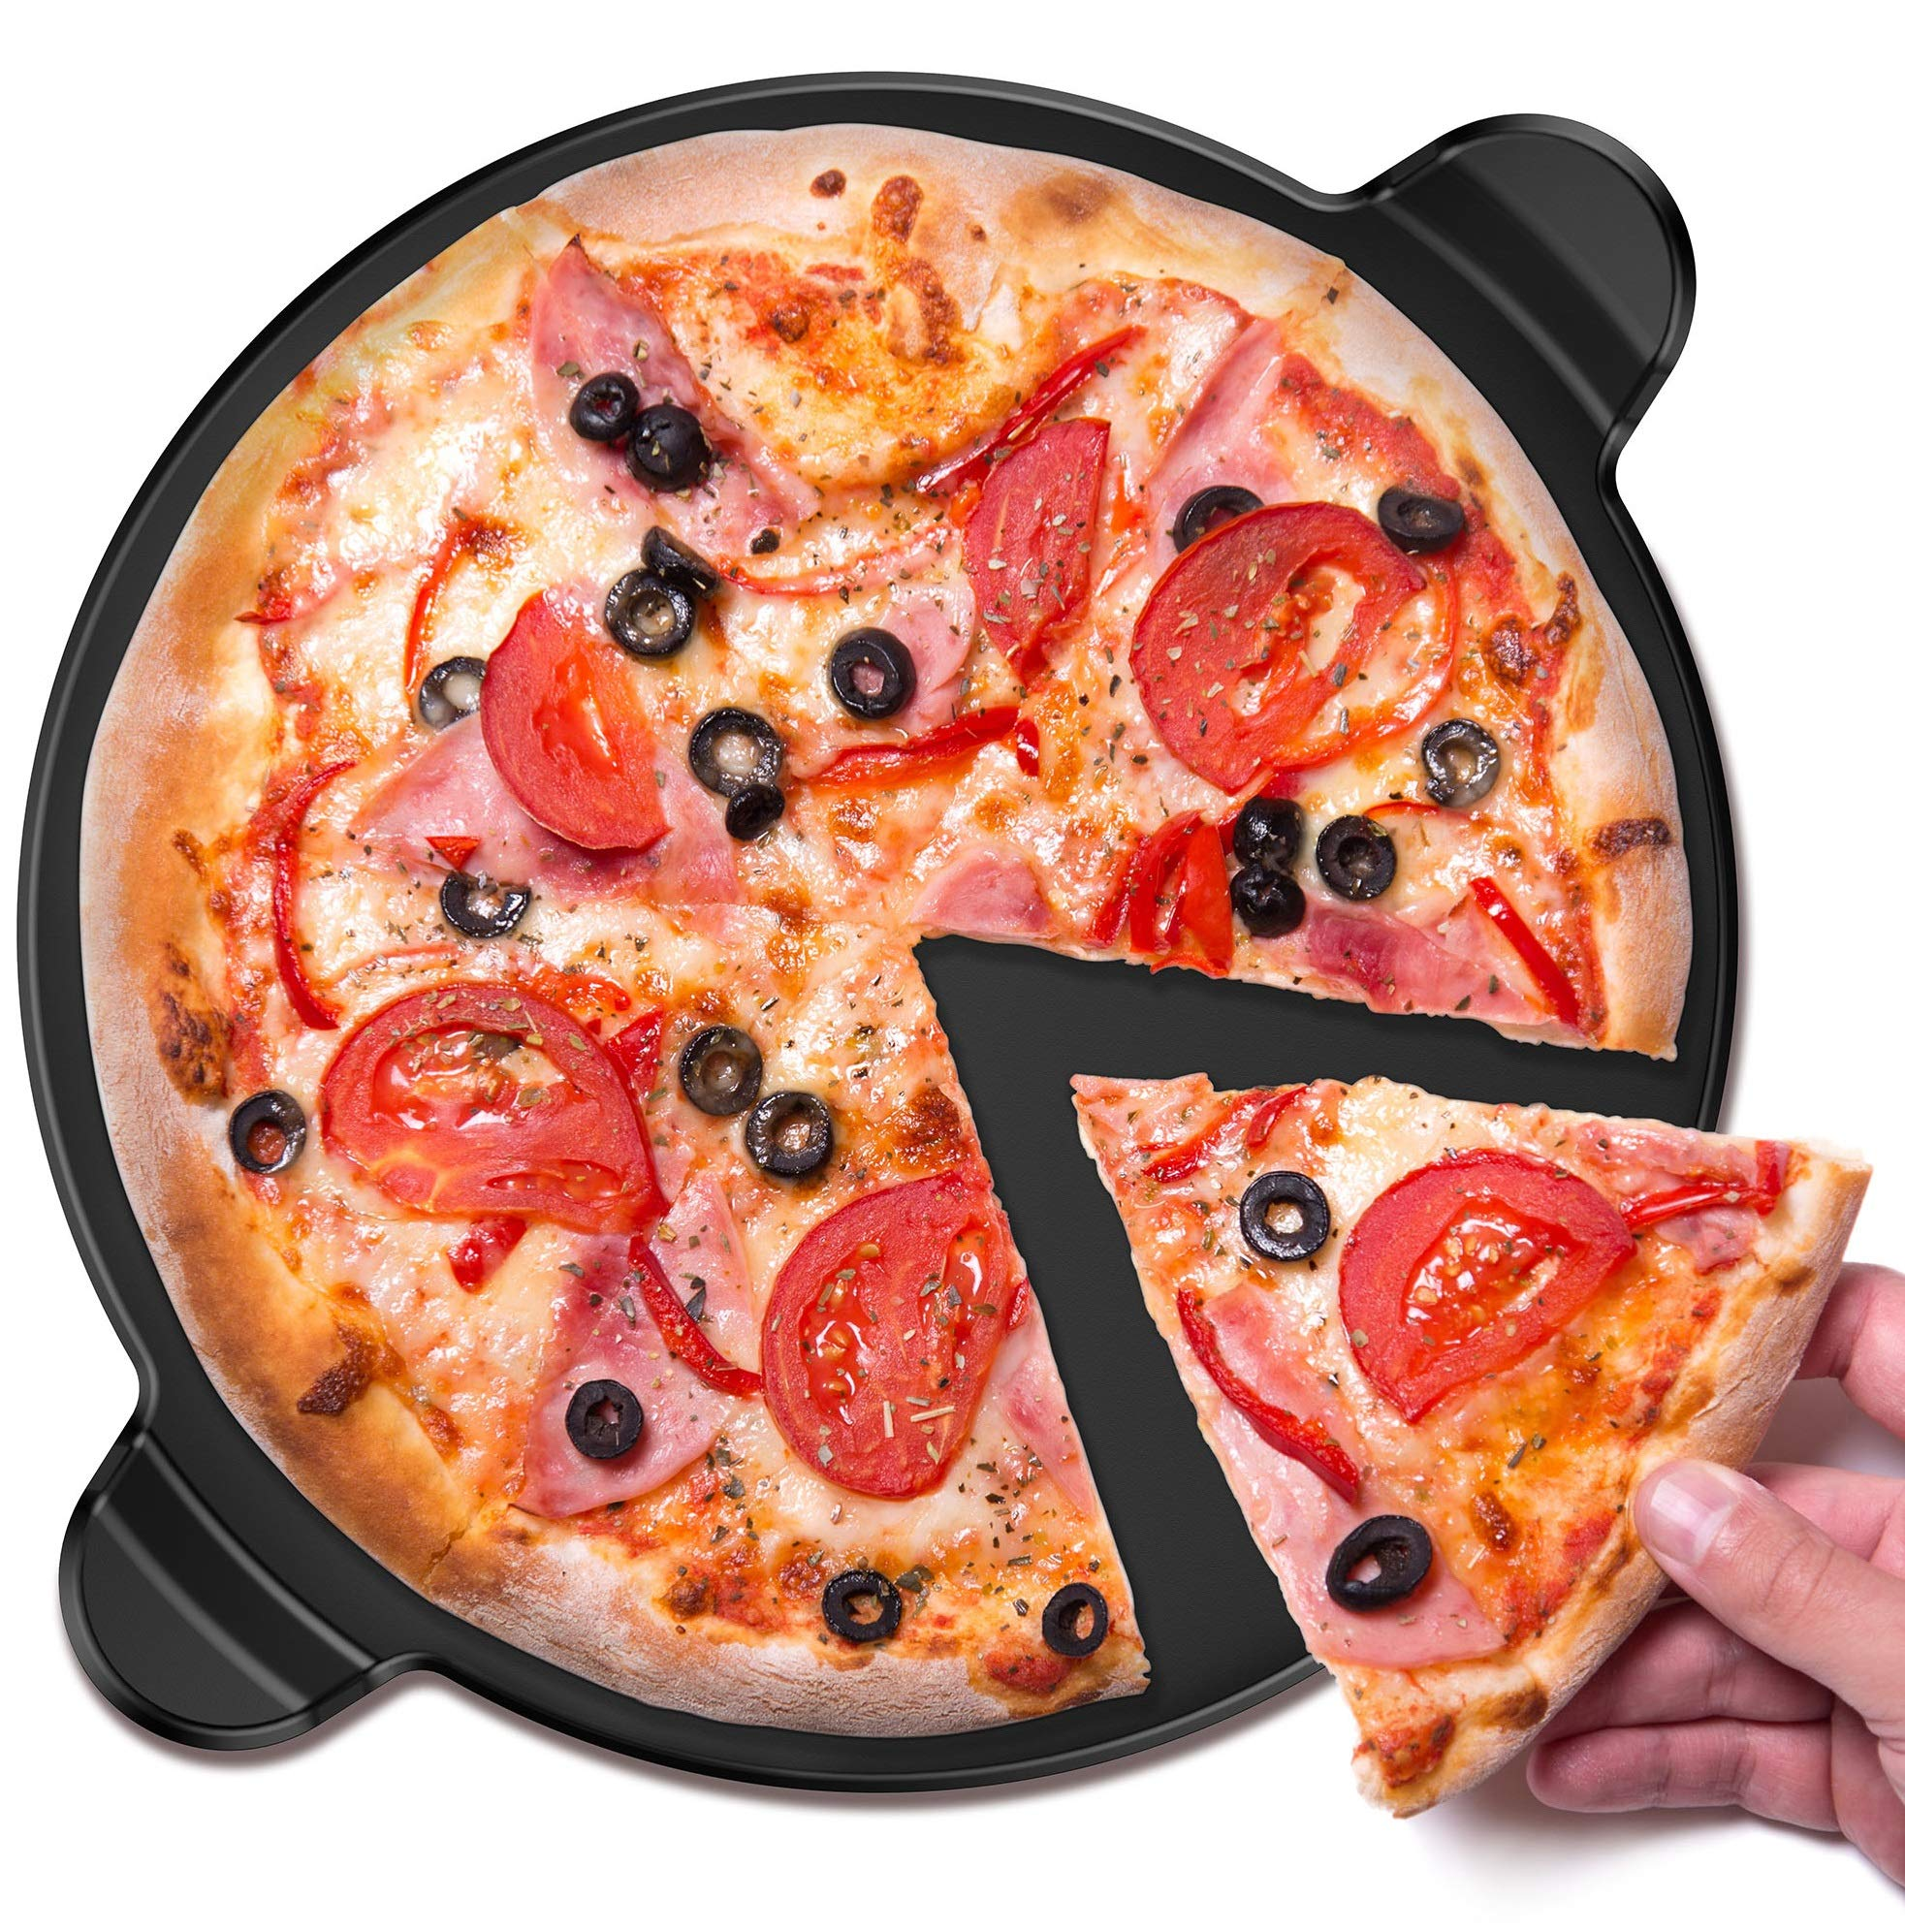 Vremi VRM020304N Ceramic Pizza Grill and Oven-Large Round 13 Inch Nonstick Baking Stone with Built-in Handles for Kitchen or Outdoor Barbeque-Thick Professional, Bread Stoneware for, Pies and Tarts